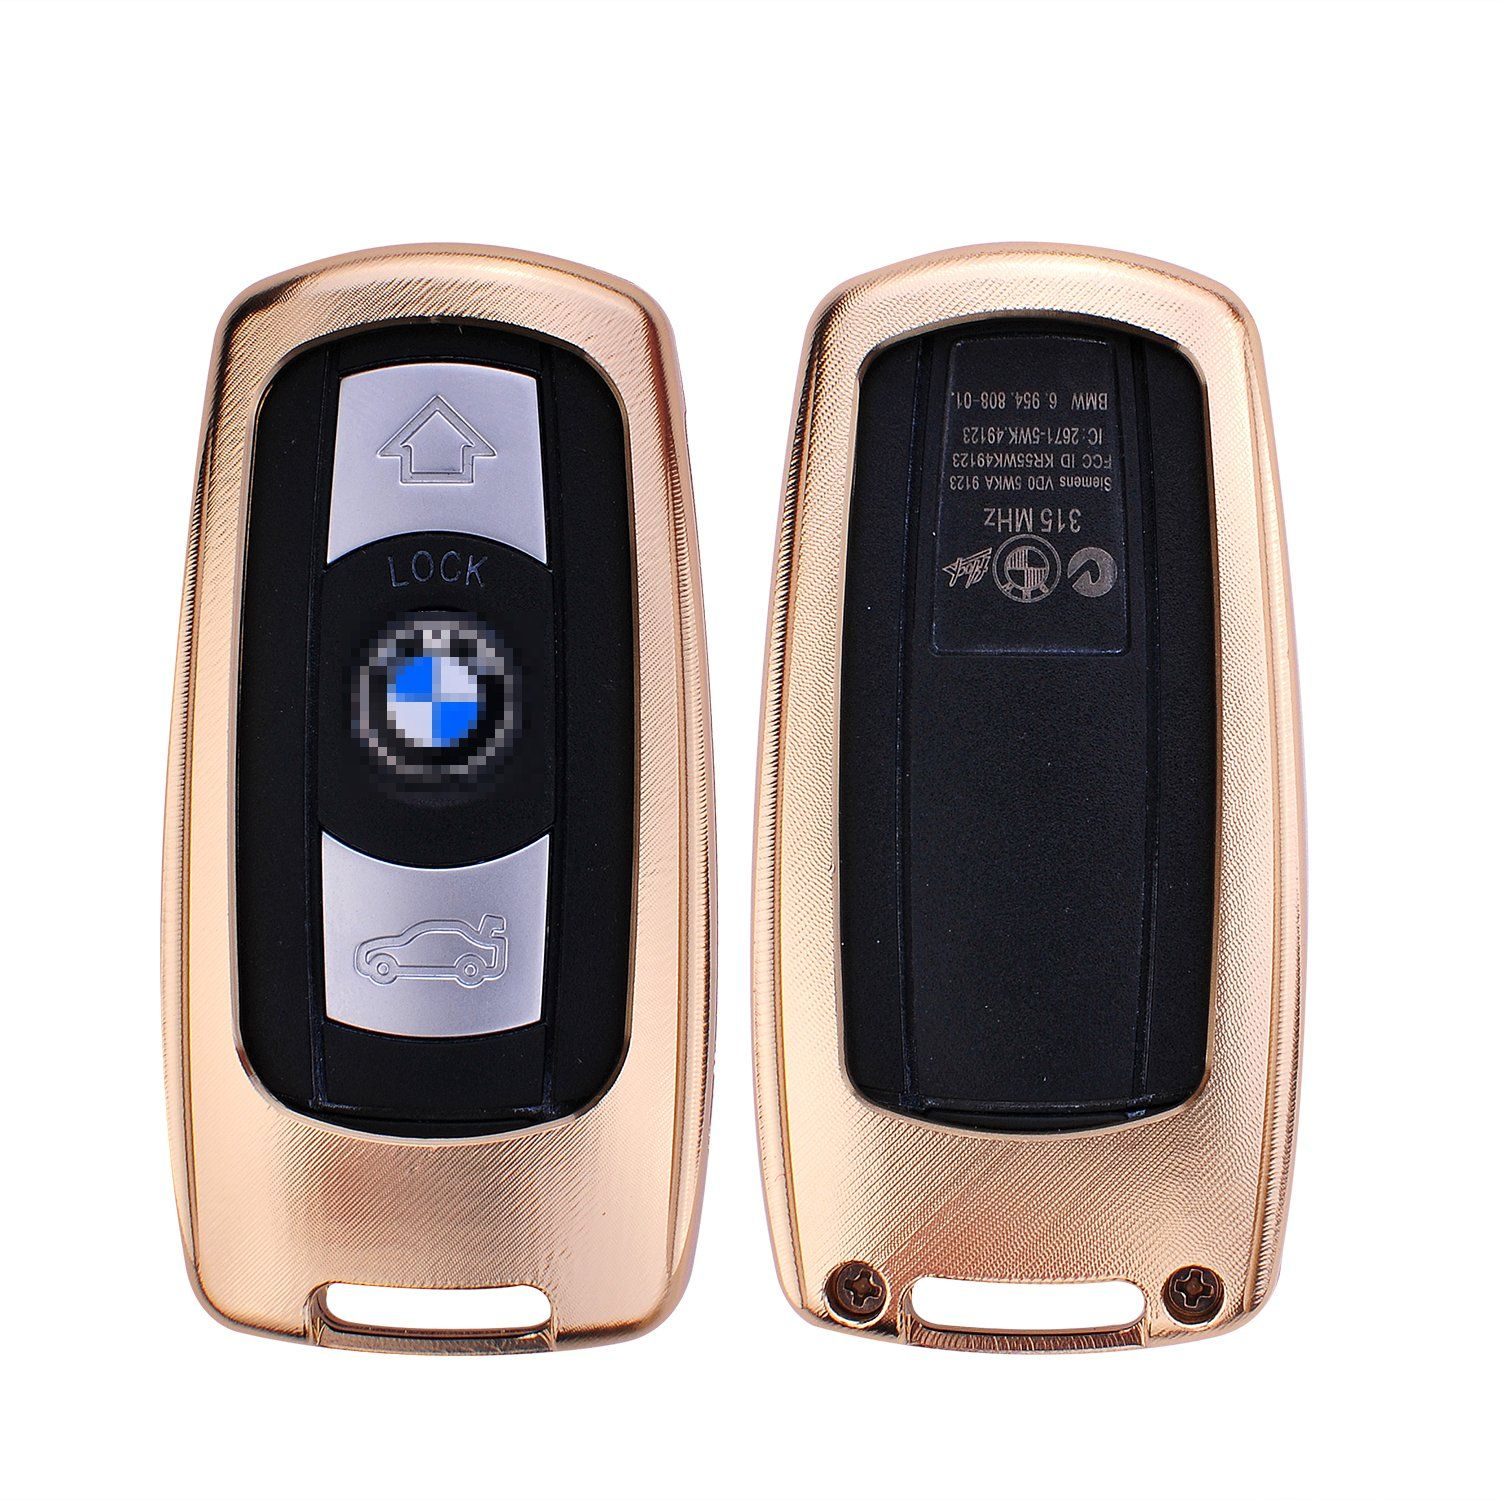 bmw incredibly keyfob it is as release but had one spring losing hard a that to up diy find button housing and spare luckily i key showthread tiny replacement under the valet goes ended forums php small